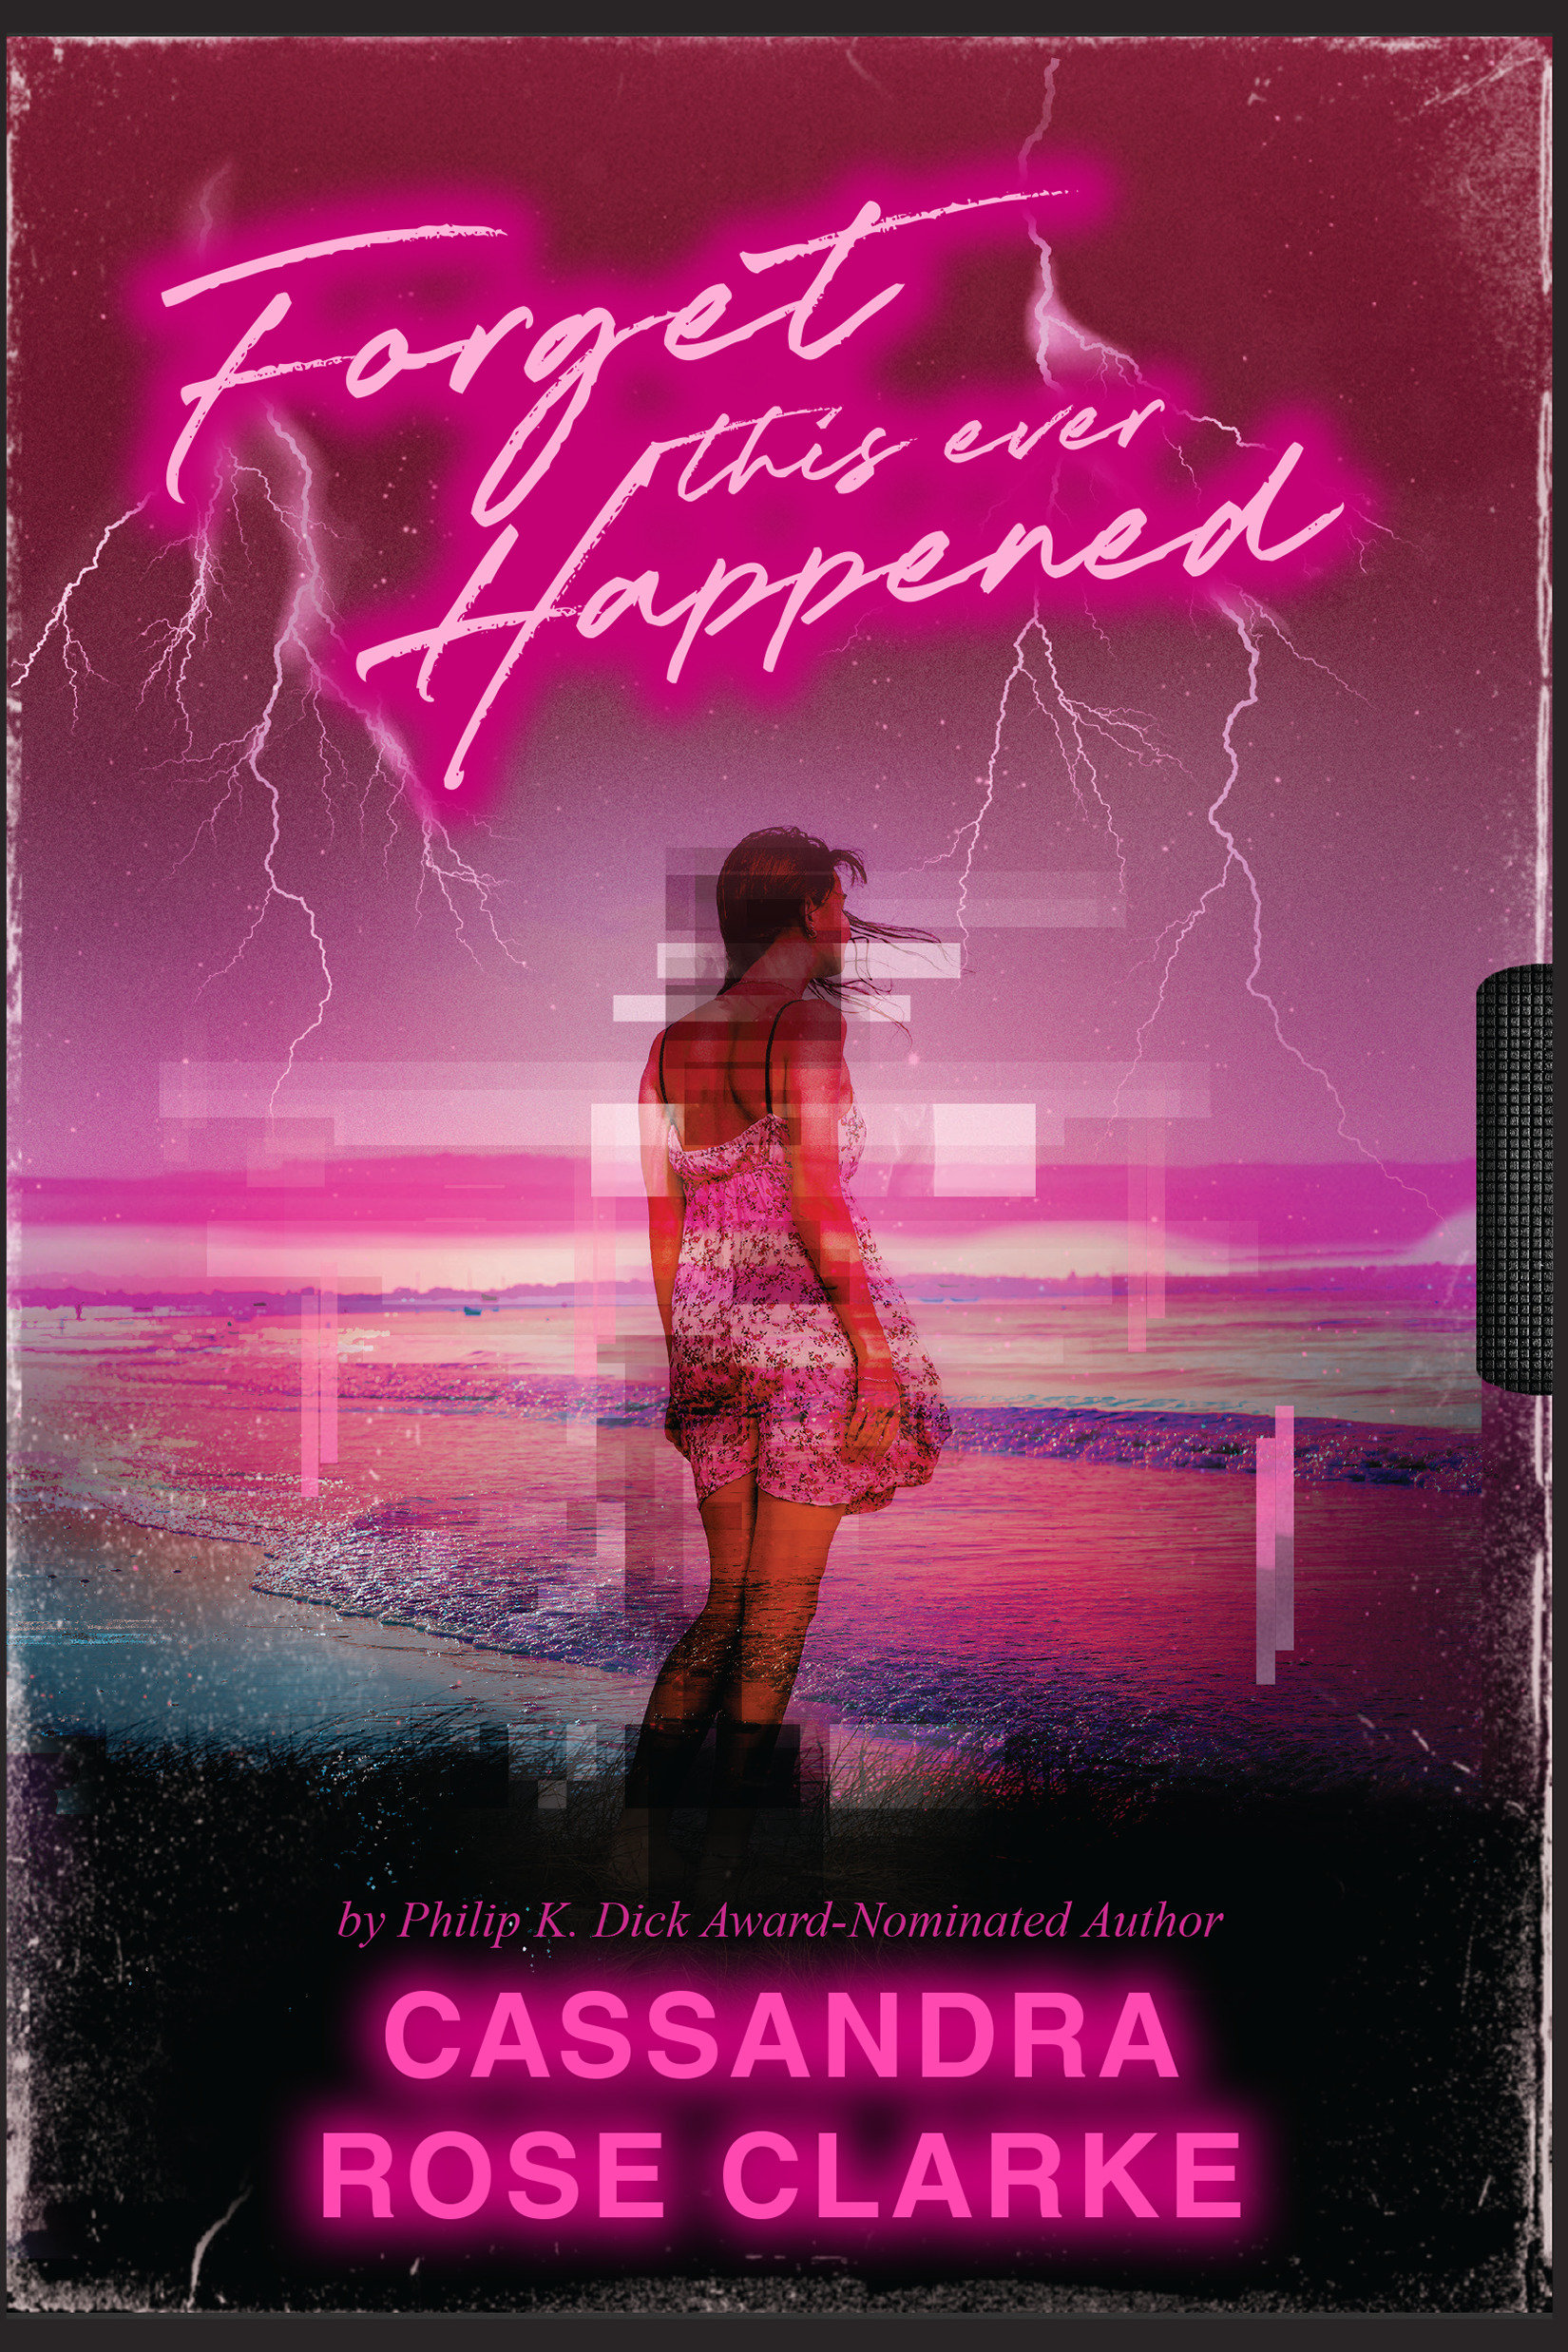 Cover Image of Forget This Ever Happened